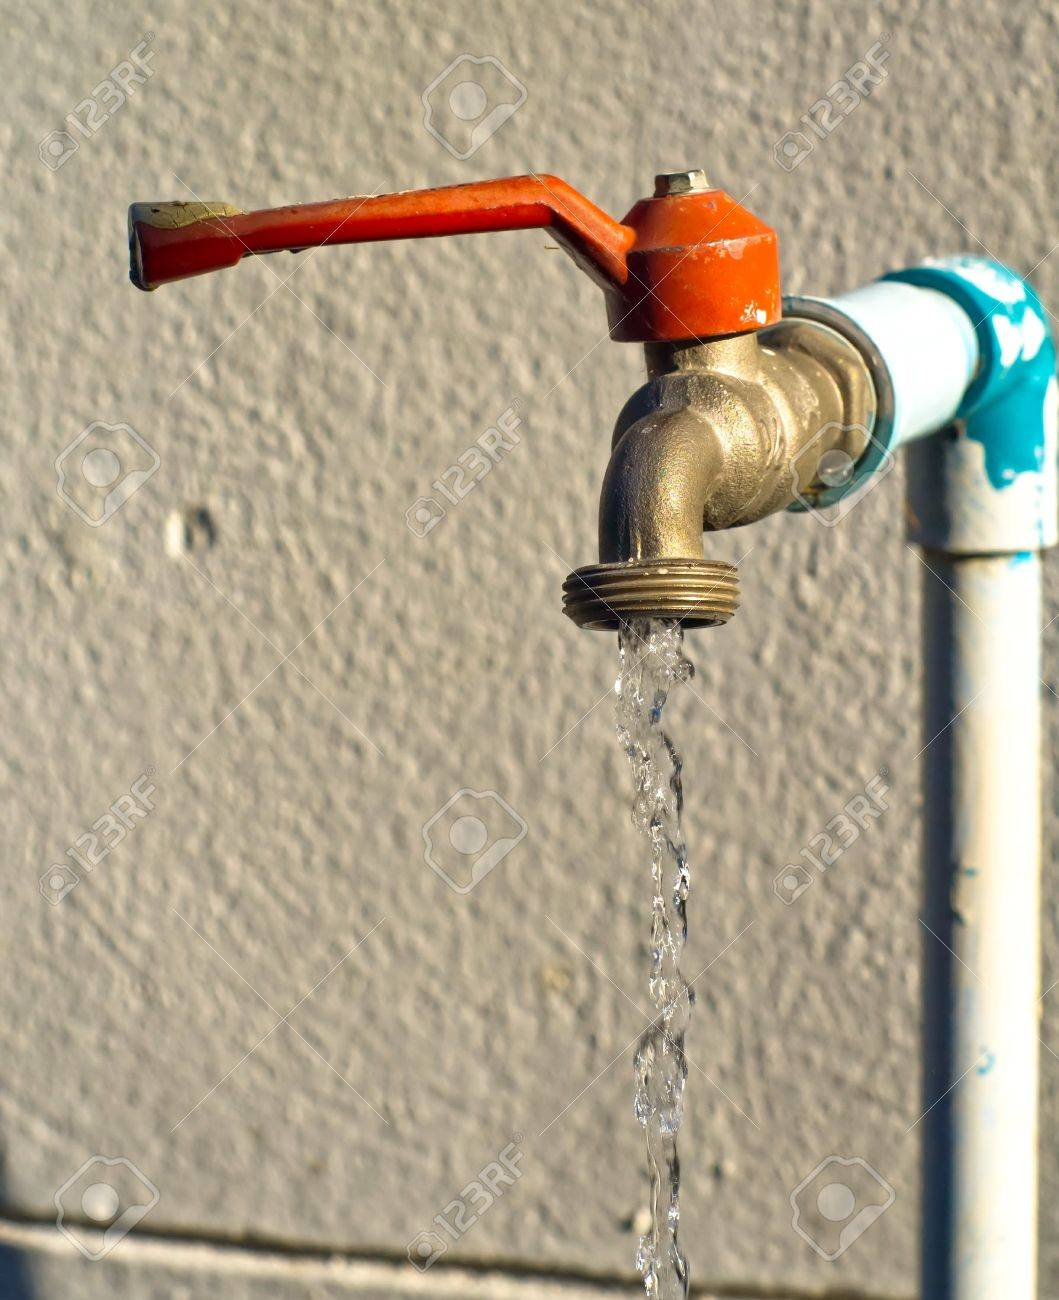 Close Up Old Water Faucet Left Open Stock Photo, Picture And Royalty ...